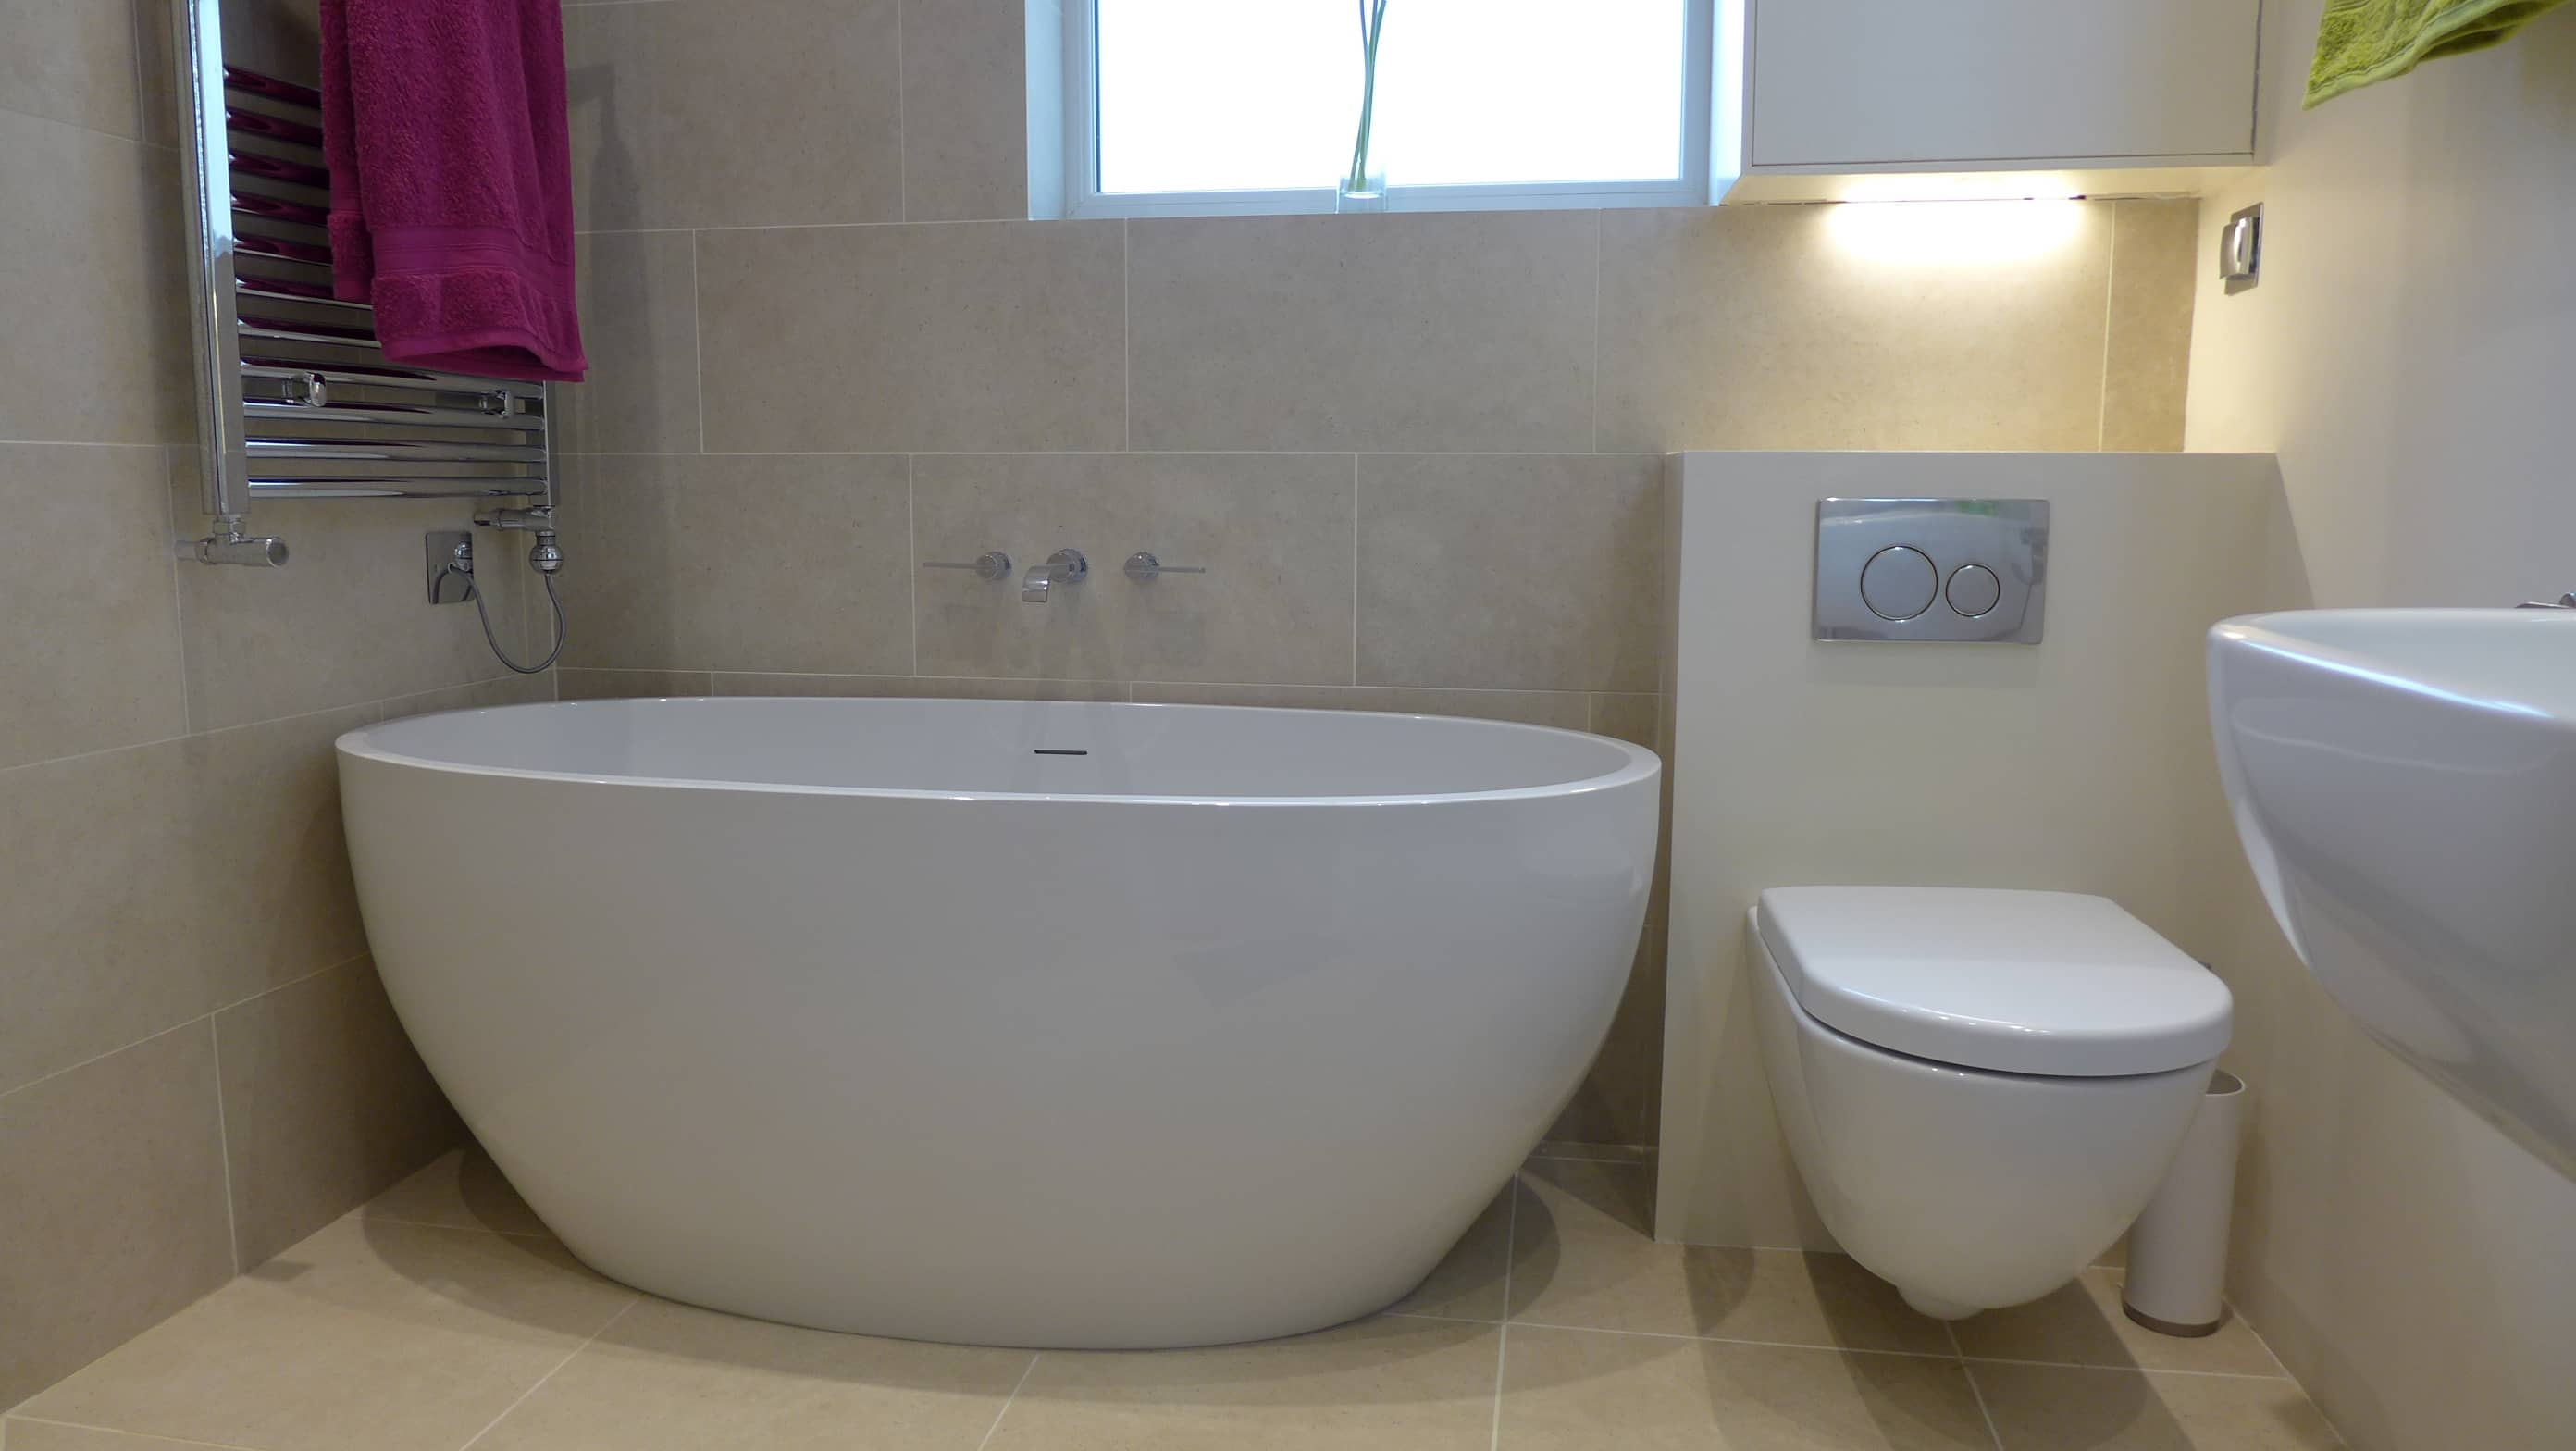 Wet room installation bath style within for Baths for small rooms